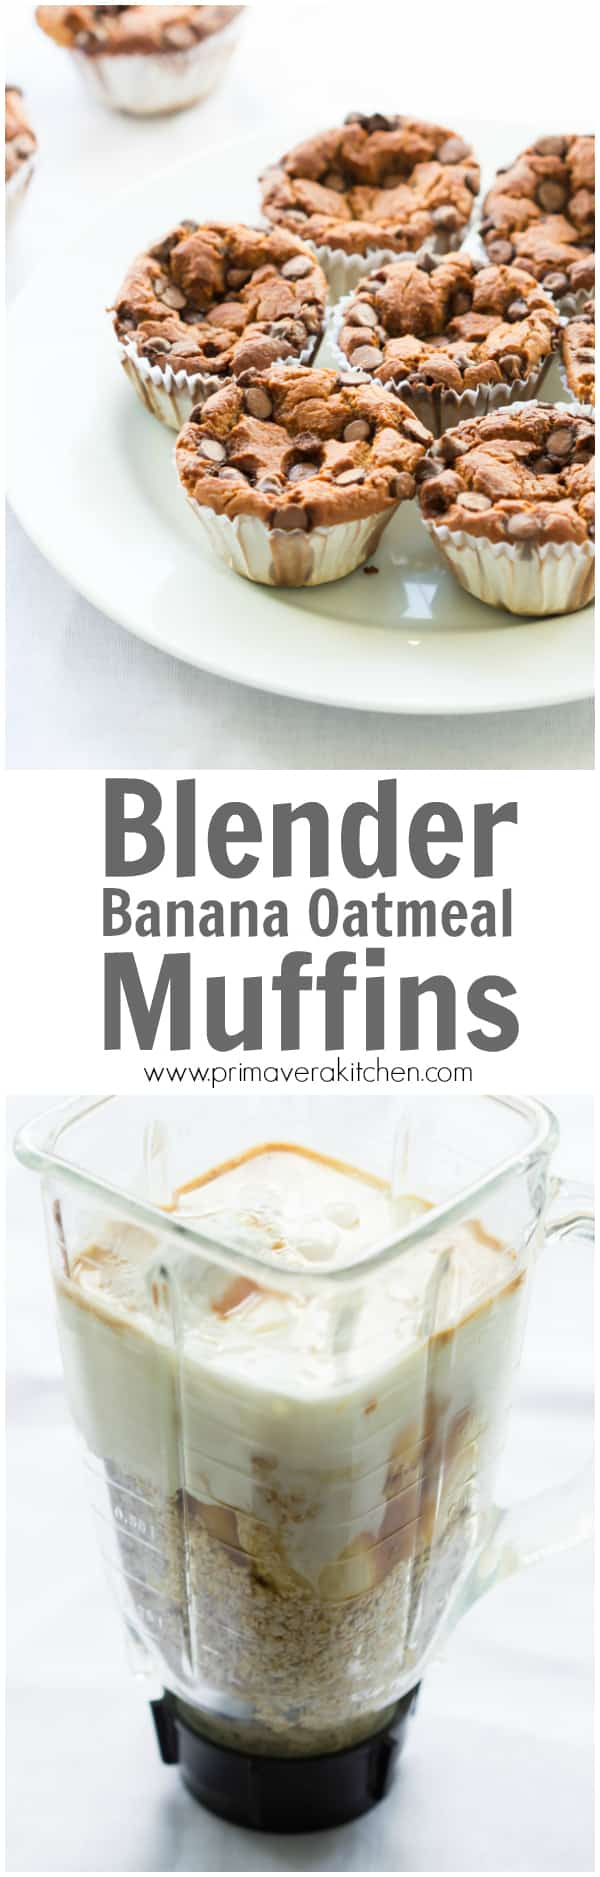 Blender Banana Oatmeal Muffins - Start your day off right with these delicious Blender Banana Oatmeal Muffins! They are gluten and oil free, but they are very moisture because of the Greek Yogurt. Also They are naturally sweetened and easy to make!